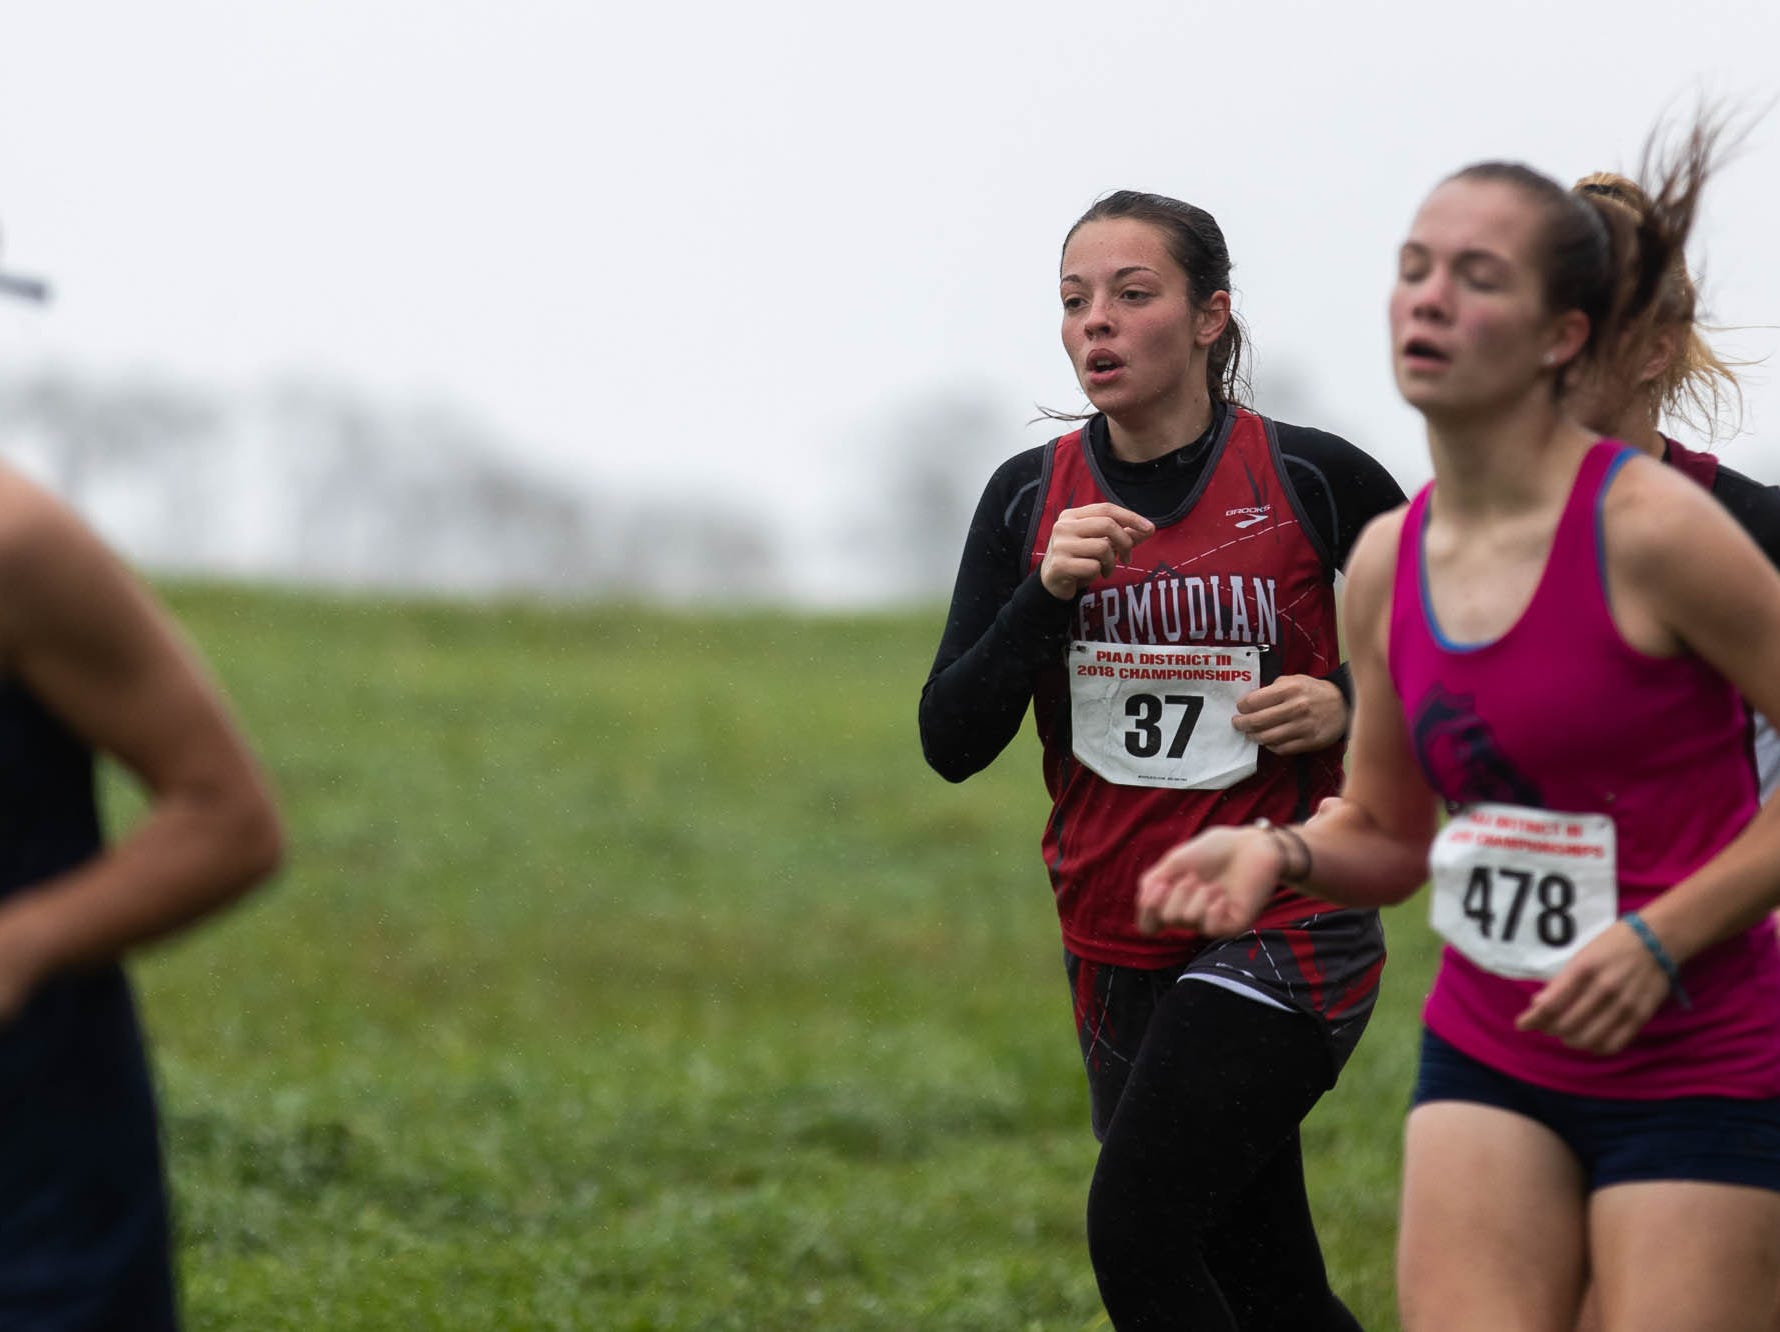 Bermudian Springs' Mia Hensil (37) runs in the Girls AA race during the PIAA District III Cross Country Championship, Saturday, Oct. 27, 2018, at Big Spring High School in Newville.